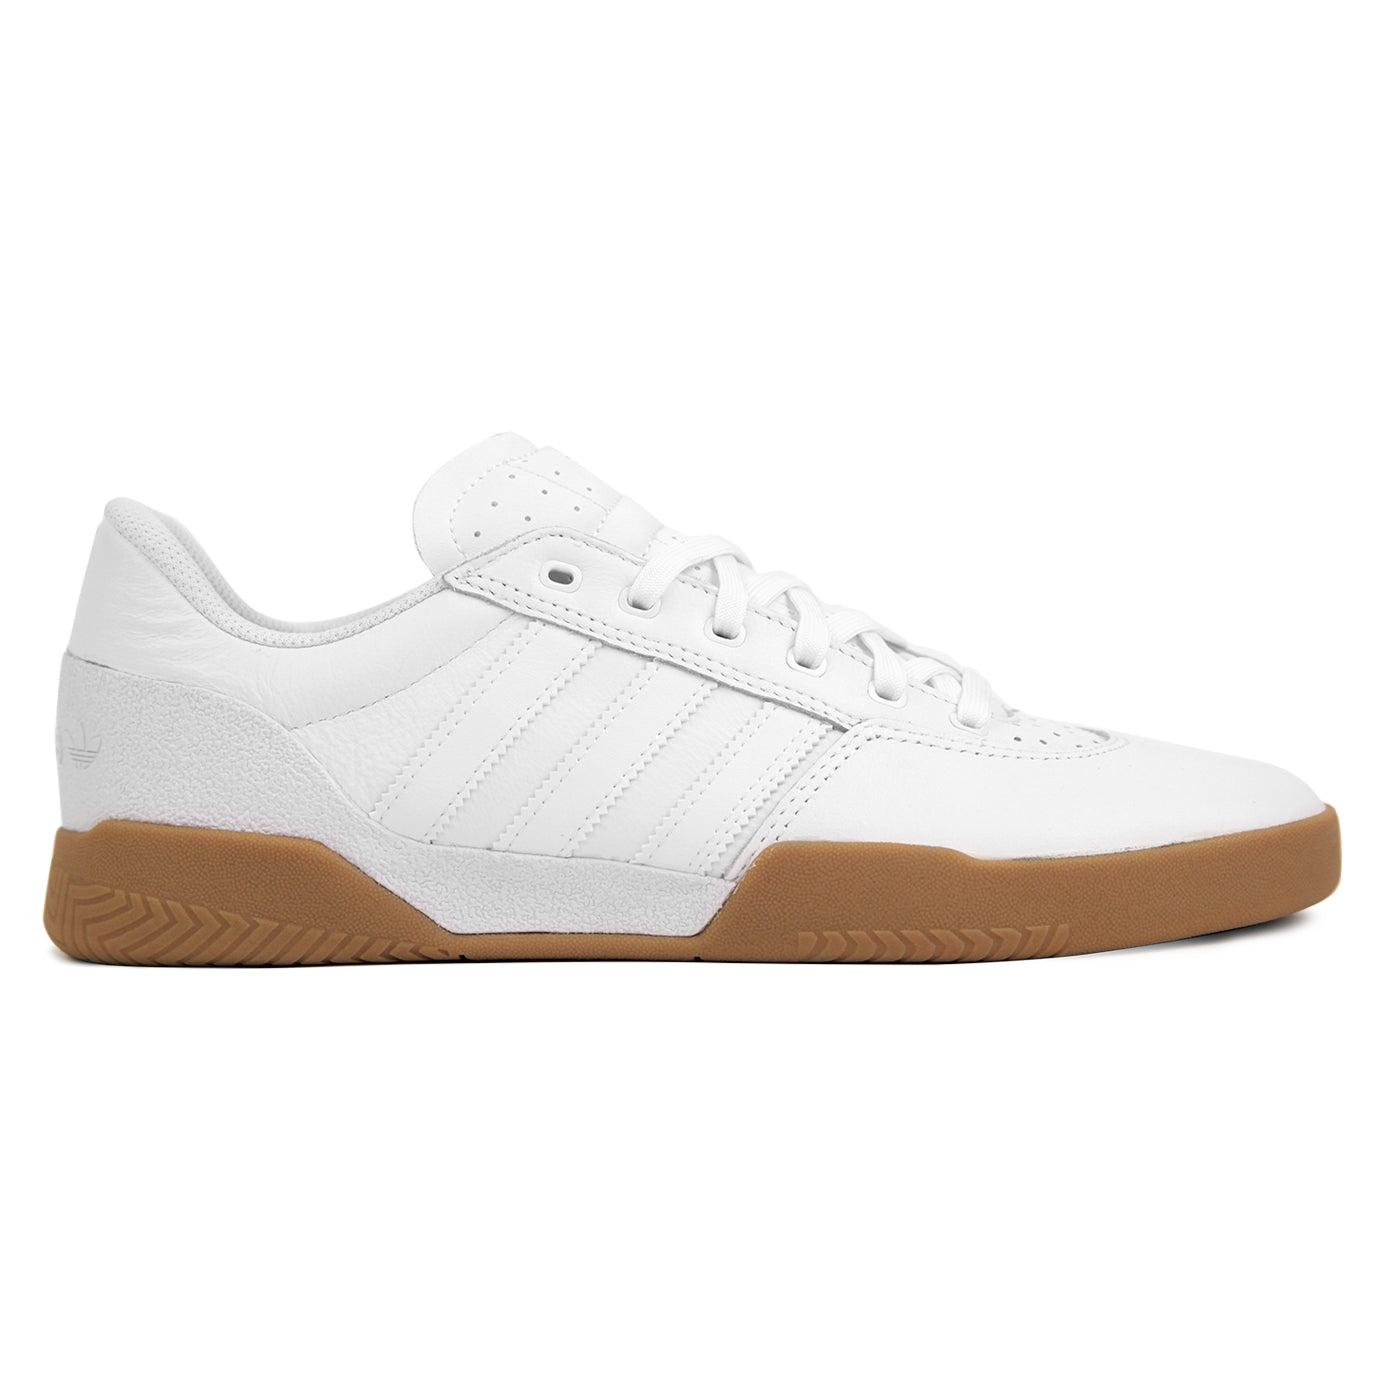 wholesale dealer 670ae 49f01 Adidas City Cup Shoes - White  White  Gum